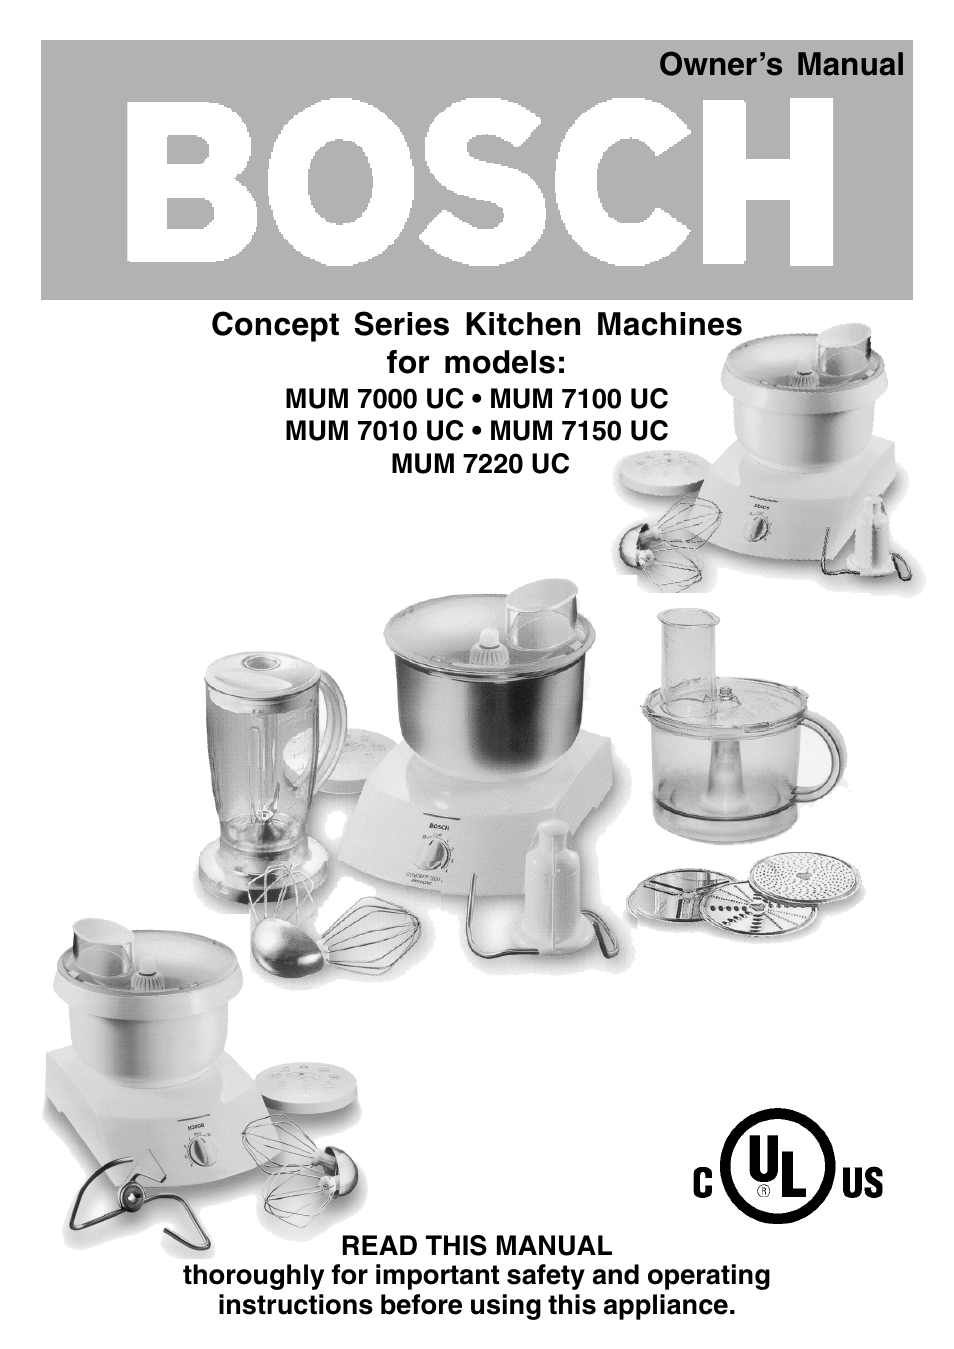 bosch mum 7000 uc user manual 32 pages also for mum. Black Bedroom Furniture Sets. Home Design Ideas